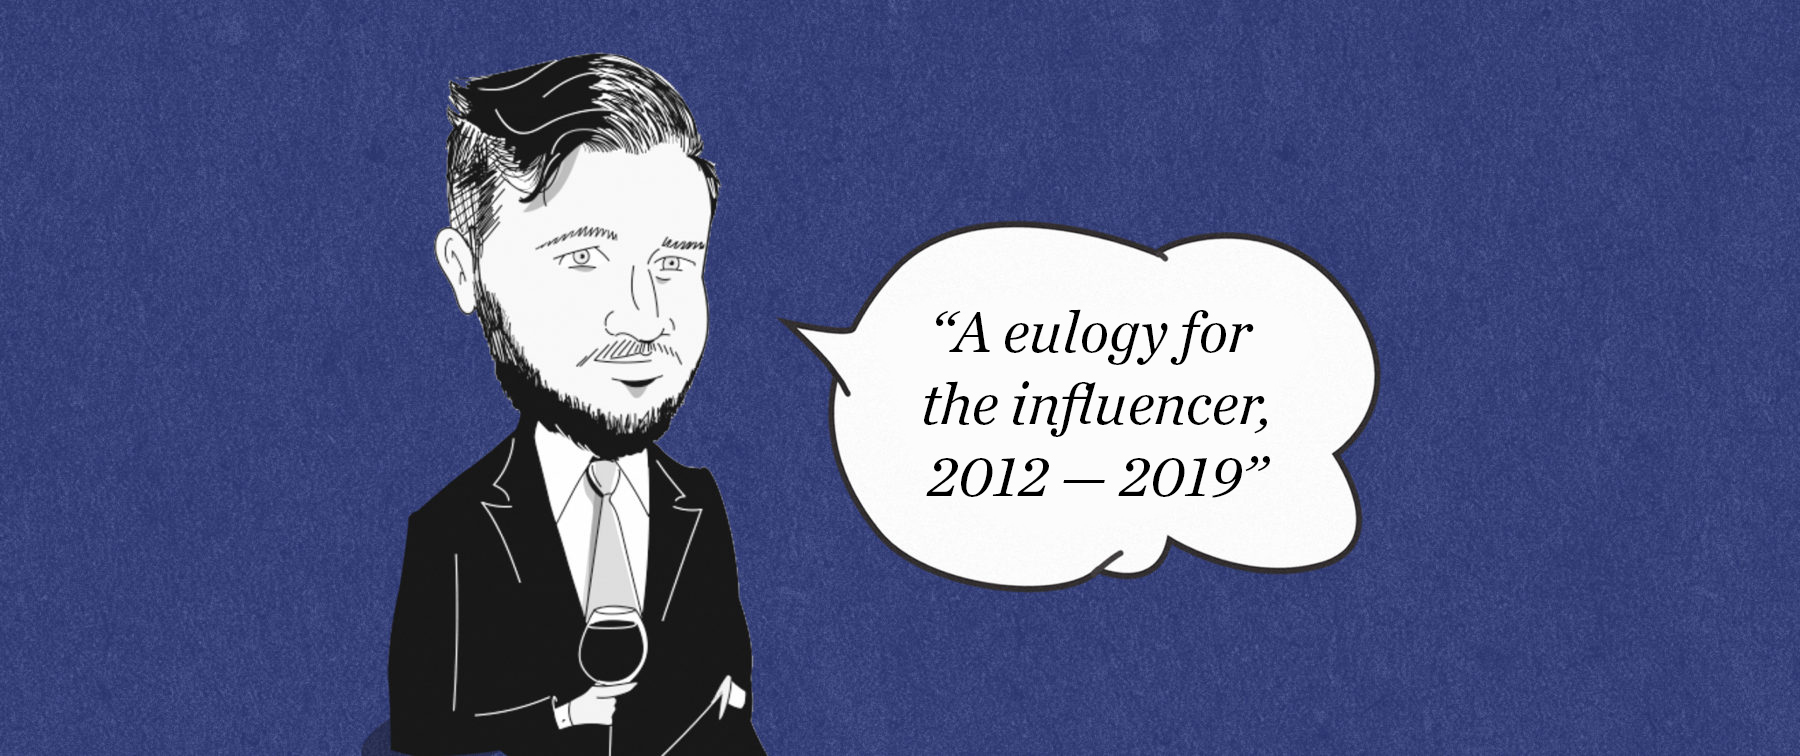 The Blind Spot: A eulogy for the influencer | Gentleman's Journal